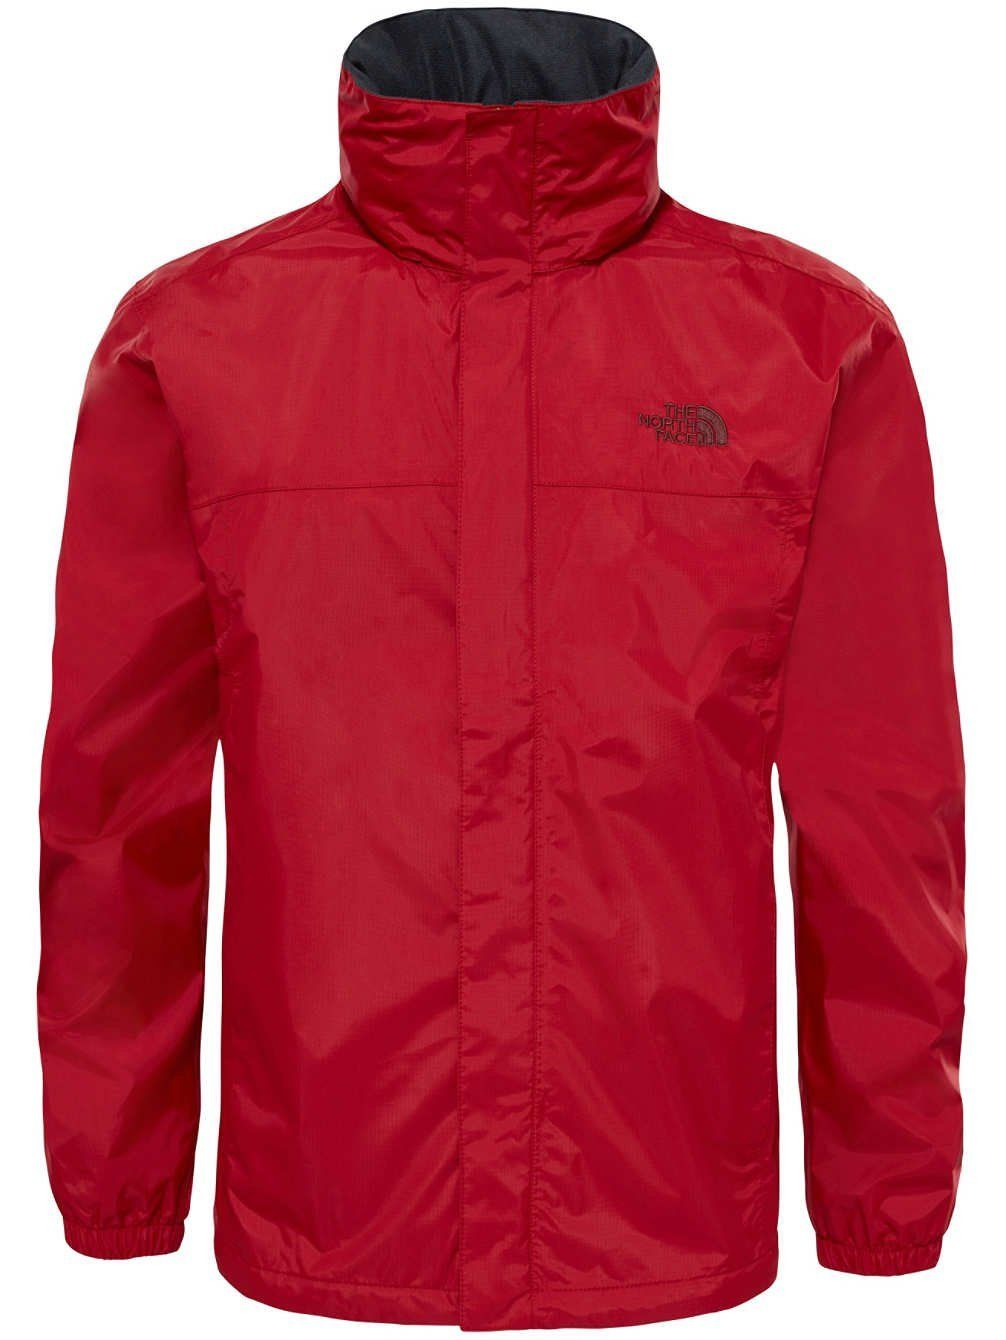 483ab1b99 Amazon.com: The North Face Men's Resolve 2 Jacket: Sports & Outdoors ...